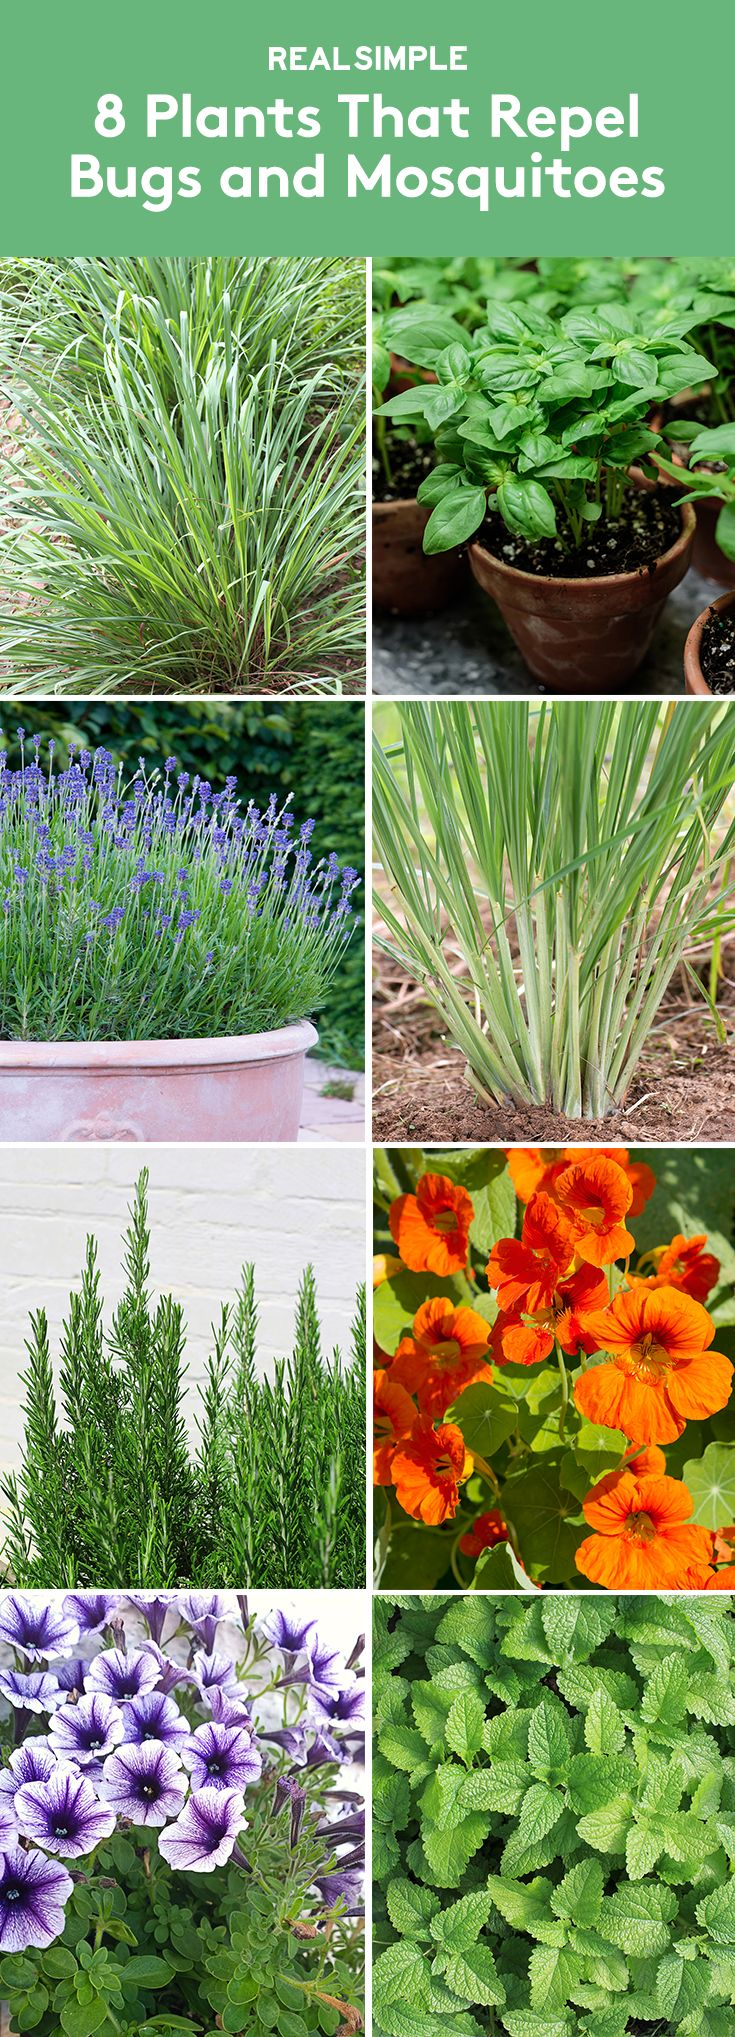 25+ unique Florida plants ideas on Pinterest | Florida flowers, Flower bed  plants and Florida landscaping